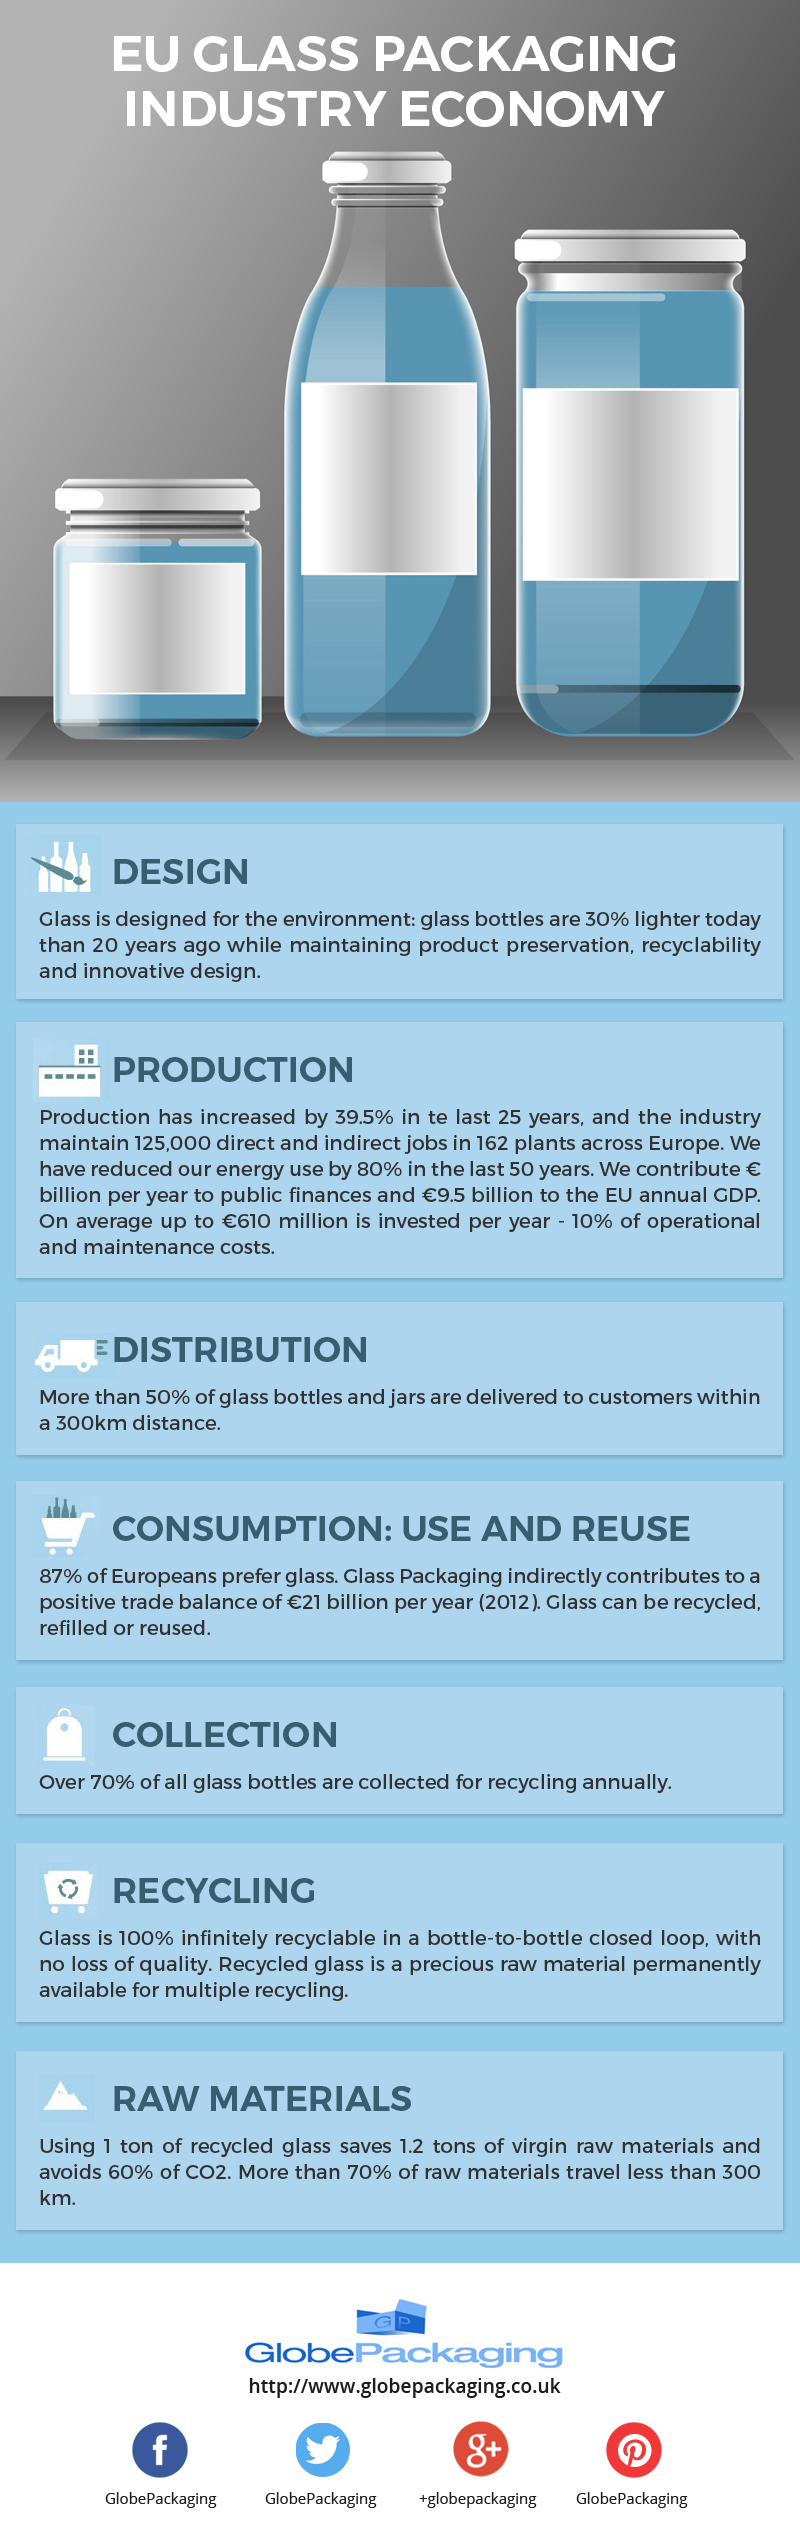 EU Glass Packaging Industry Economy [Infographic]